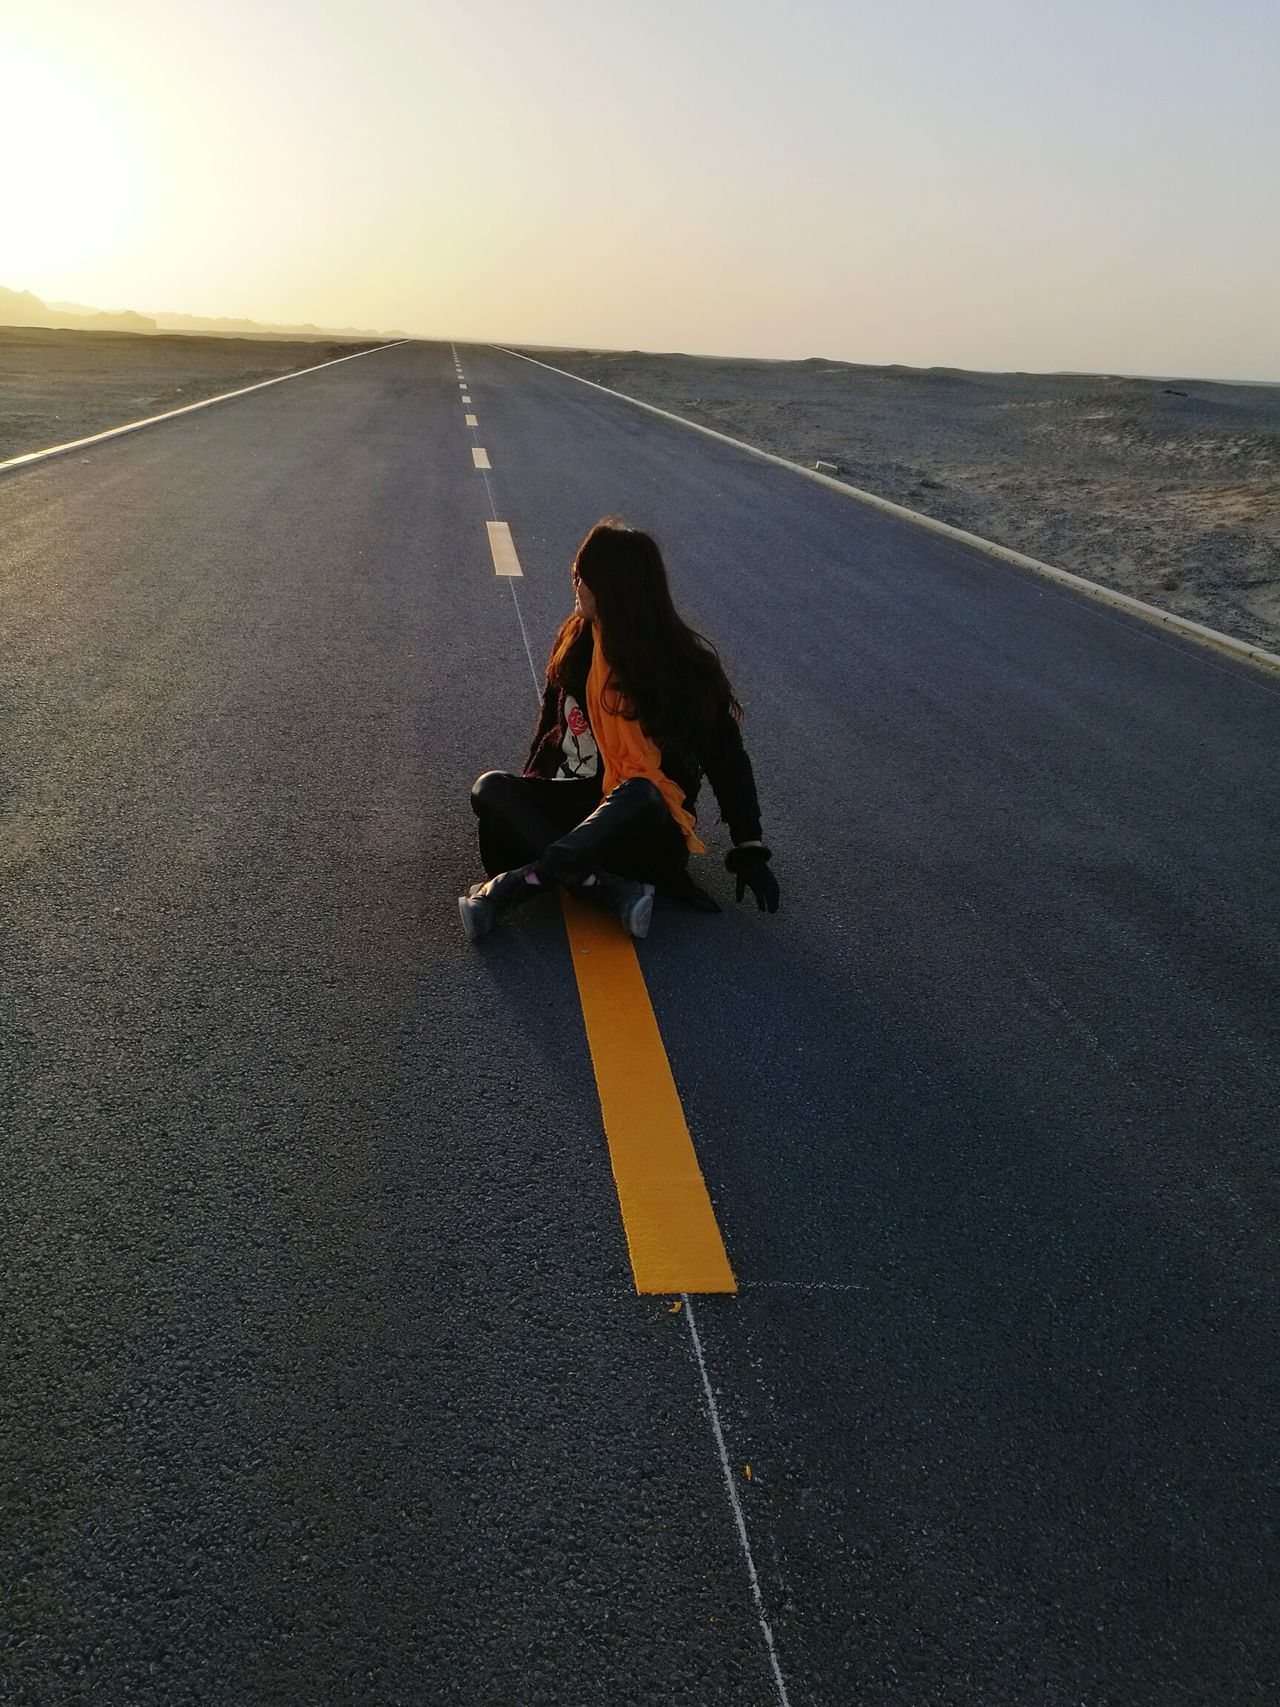 Travel One Person Adventure Sunset Lonley Road Nature Sky Sitting On My Way To... Peaceful Evening ePeace And Quiet Lonely Trip Evening Time The Road To Uncertainty The Way Forward The Road Goes On Forever The Road So Far People Photography People Miles Away